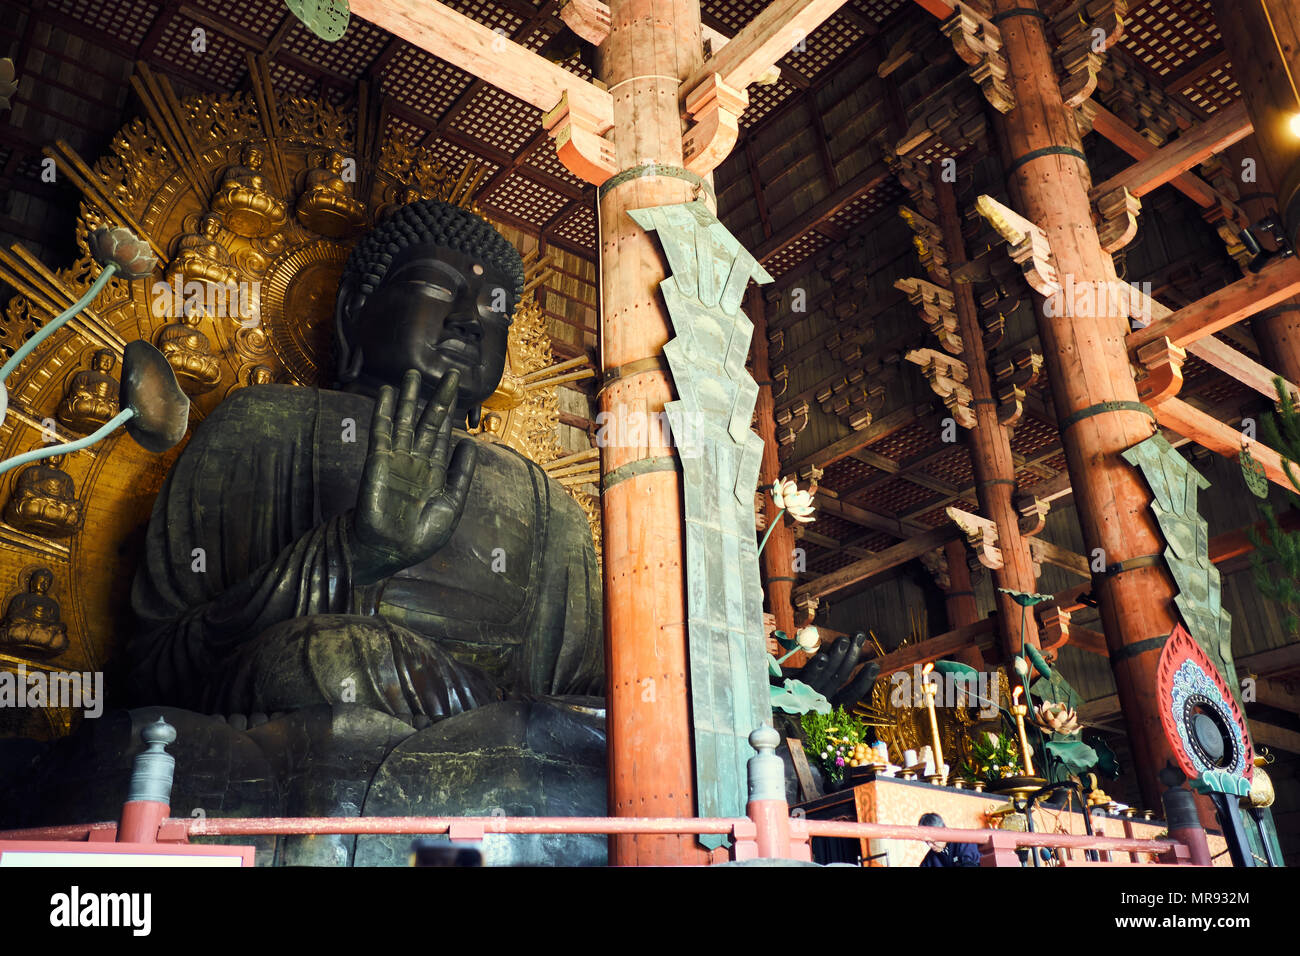 Buddha Statue at Todai-ji Temple in Nara, Japan Stock Photo